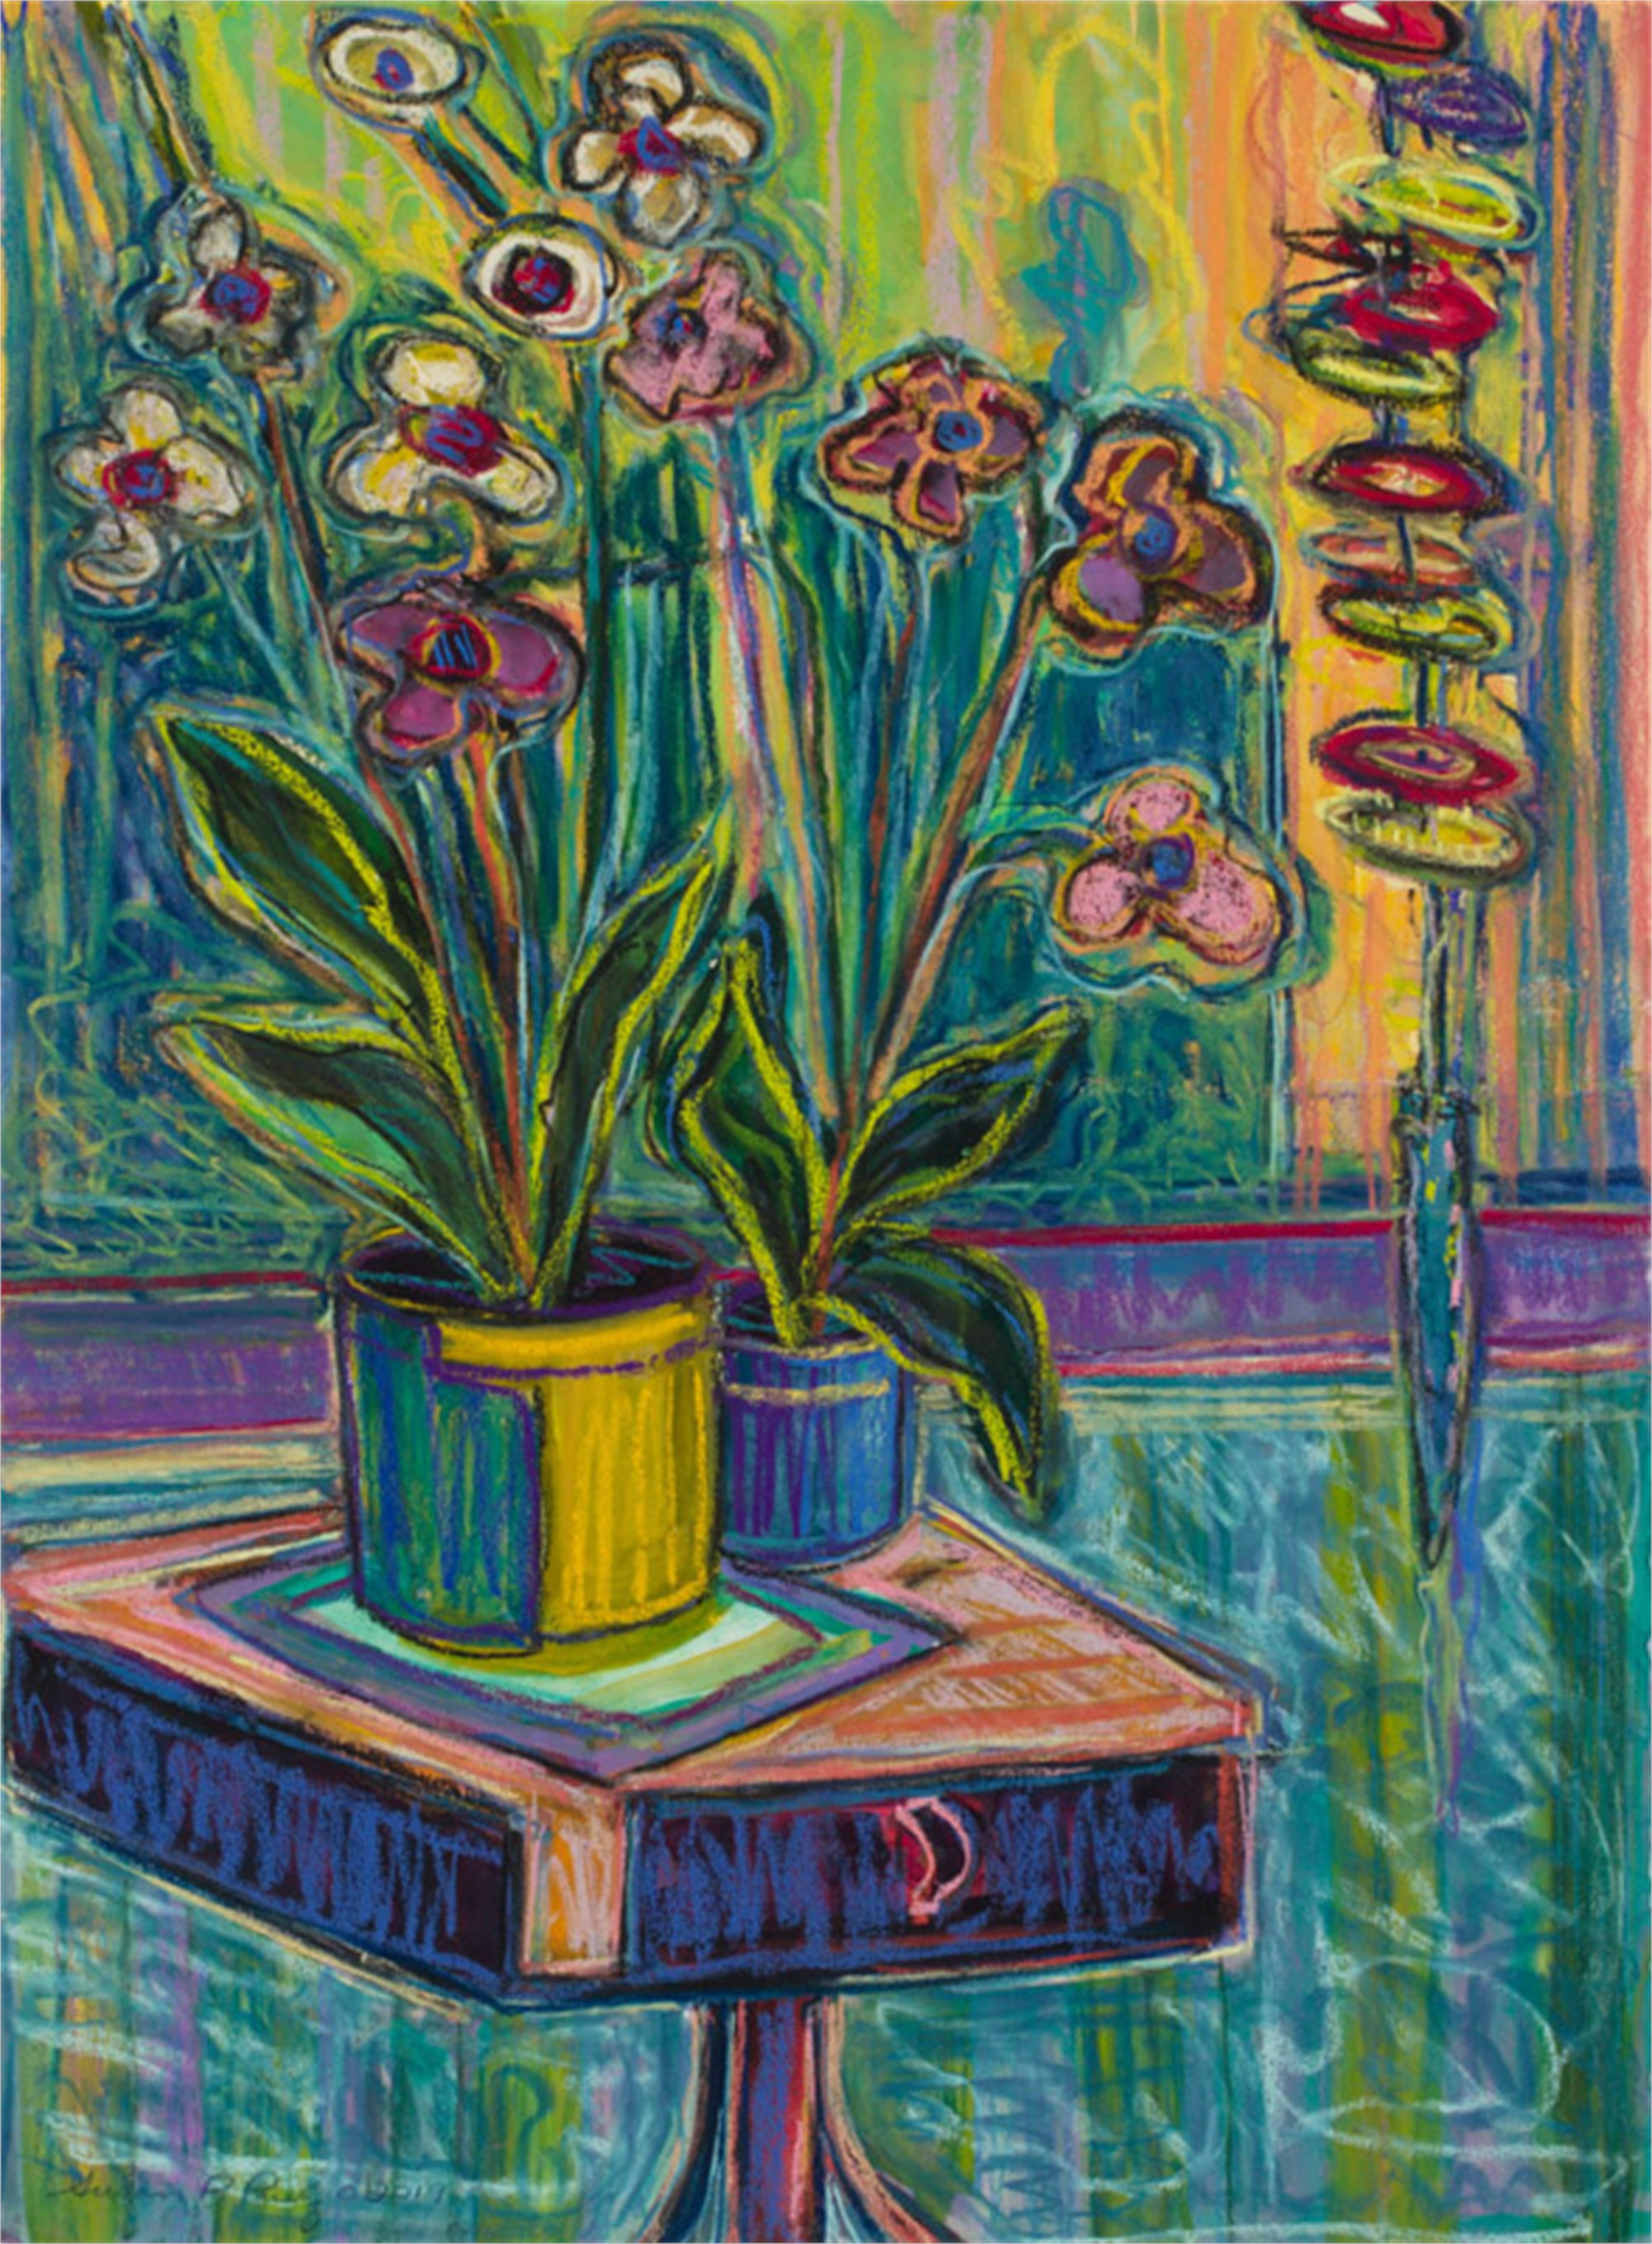 Two Orchids on a Danish Table by Susan Puelz